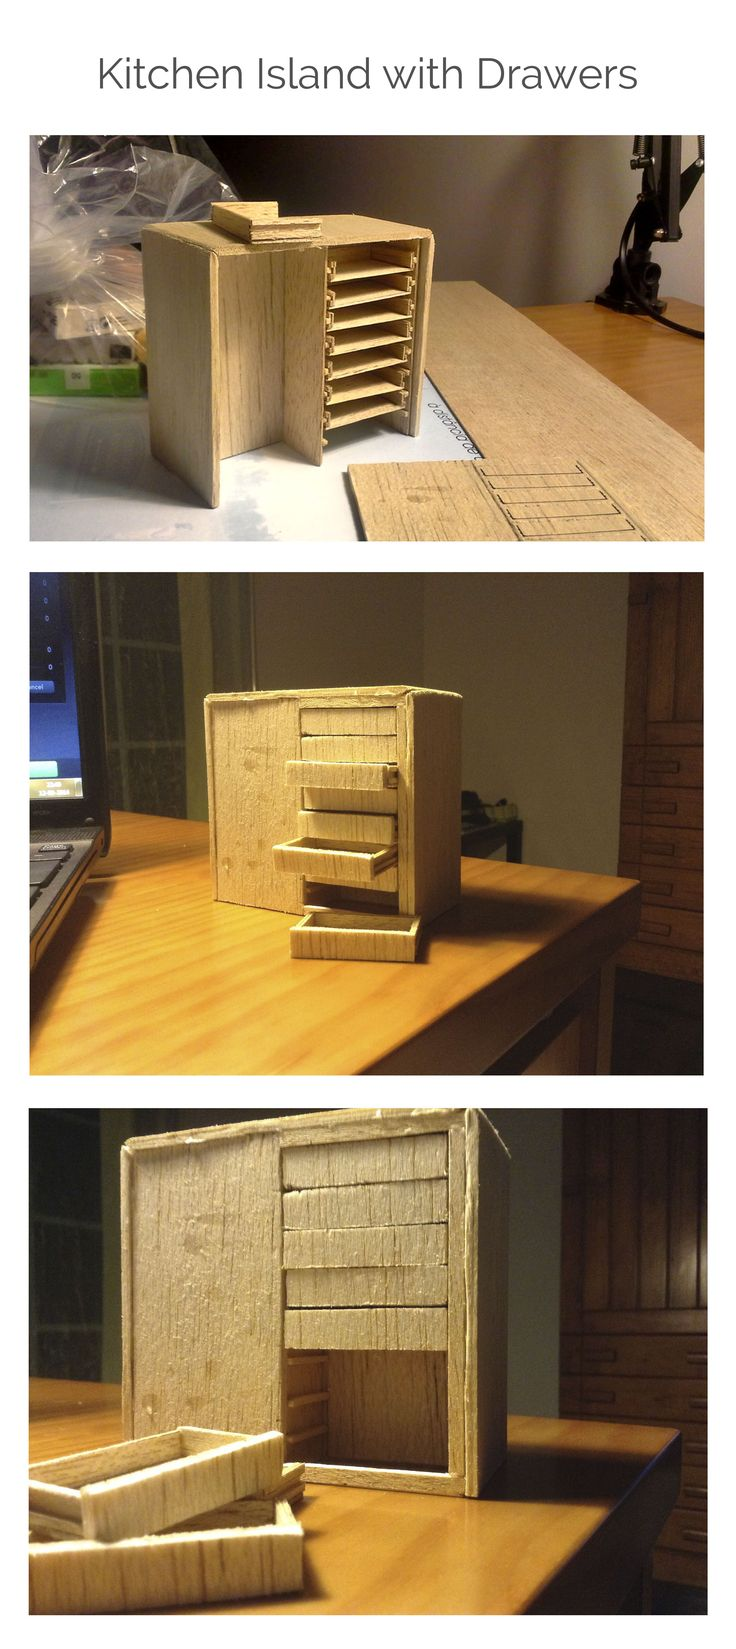 Kitchen Island With Drawers    Fully functional    Material: Balsa wood (is easier to work with than regular wood)